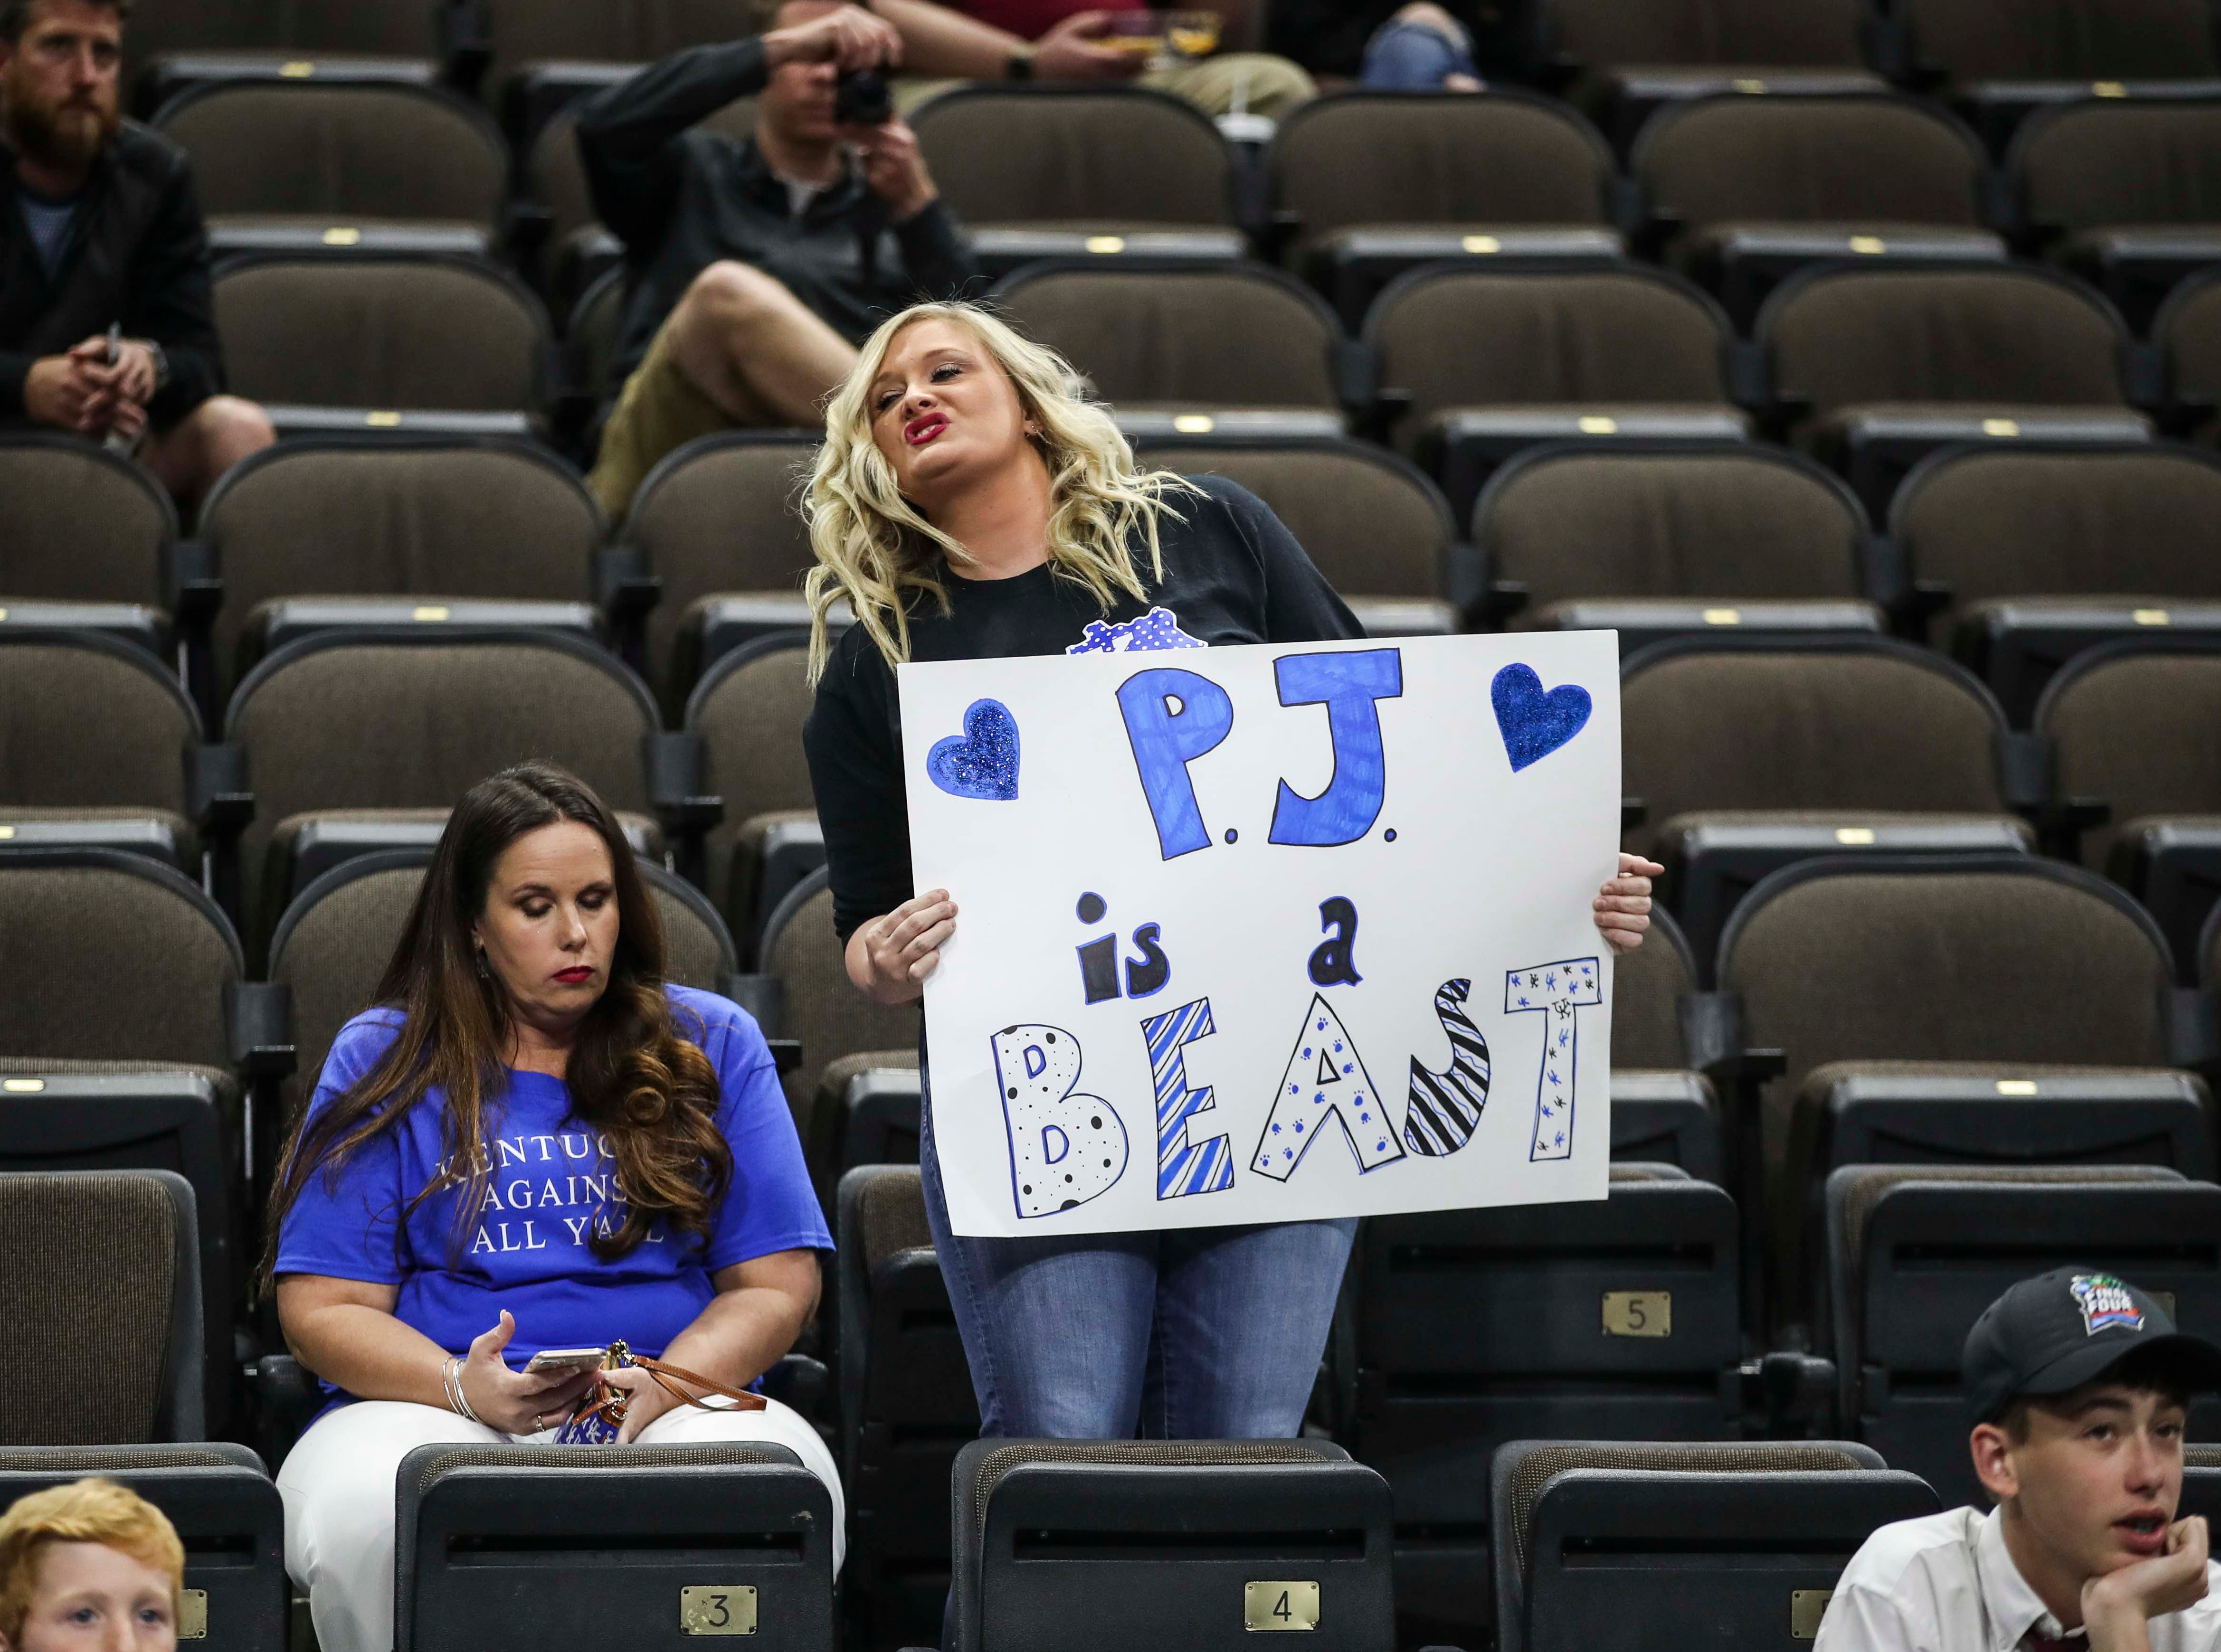 A Kentucky fan held up a sign for an absent PJ Washington Jr. during the NCAA tourney practice Wednesday afternoon in Jacksonville. March 20, 2019